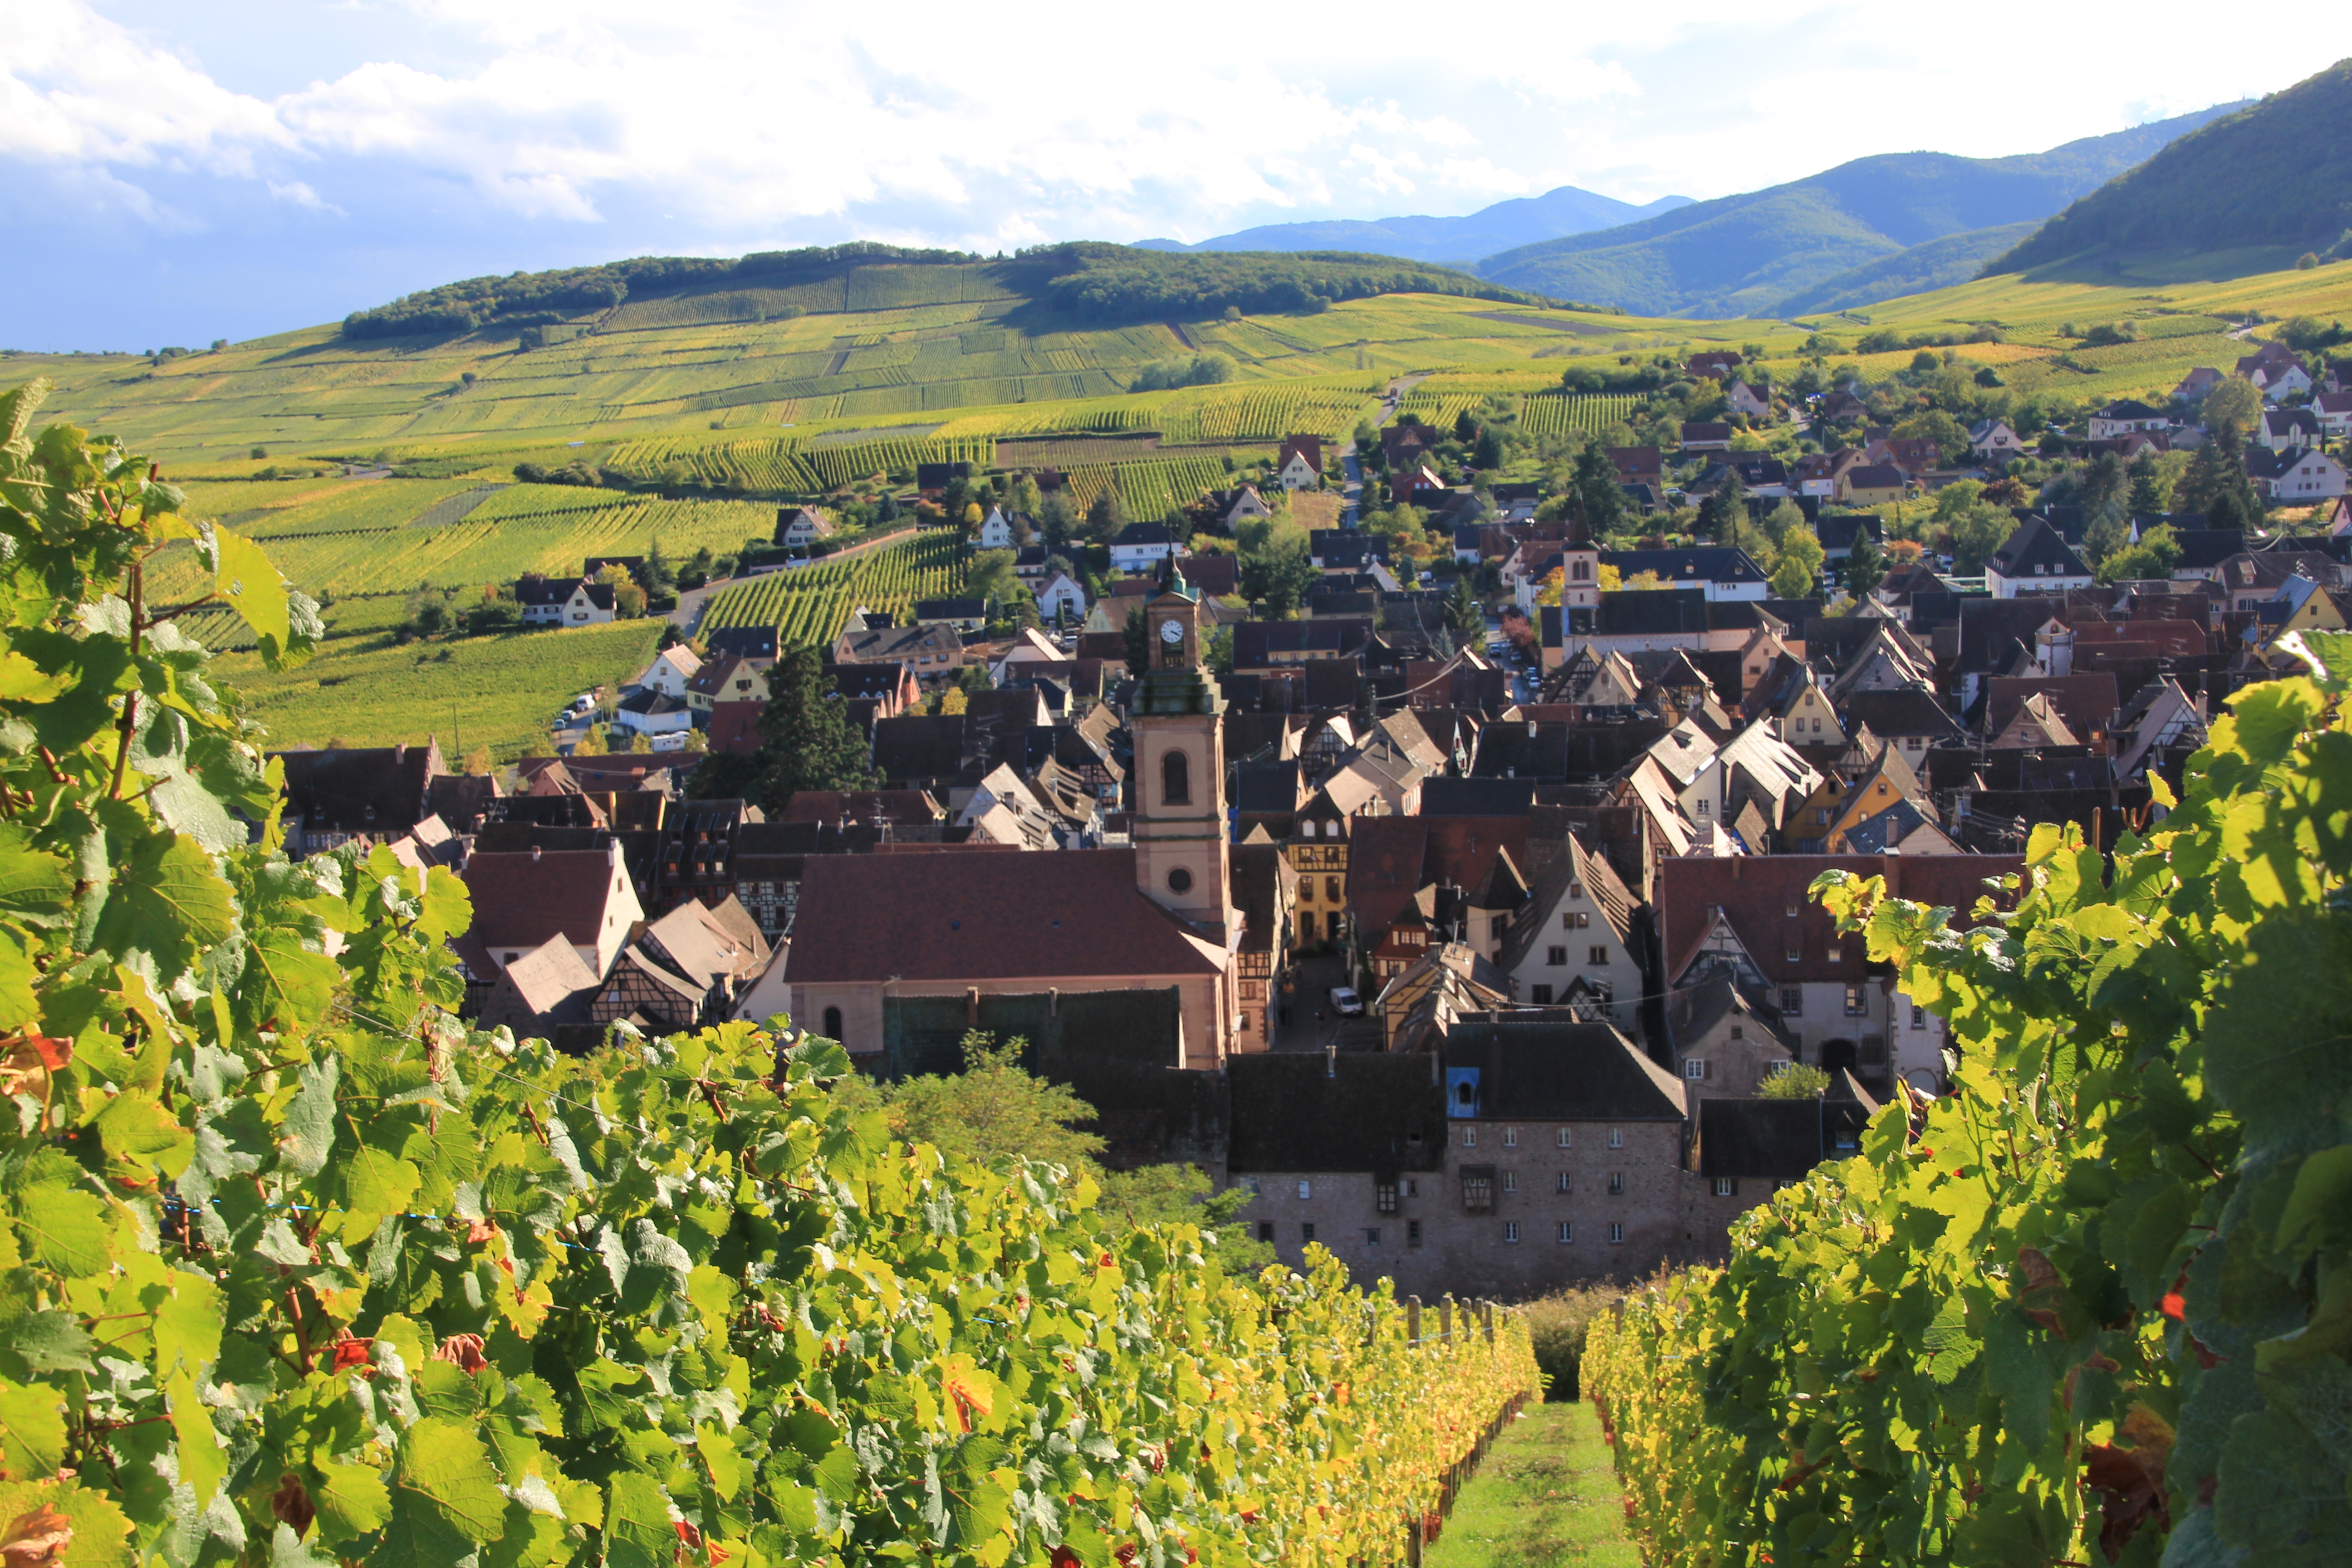 Alsace 2015: 'truly exceptional'